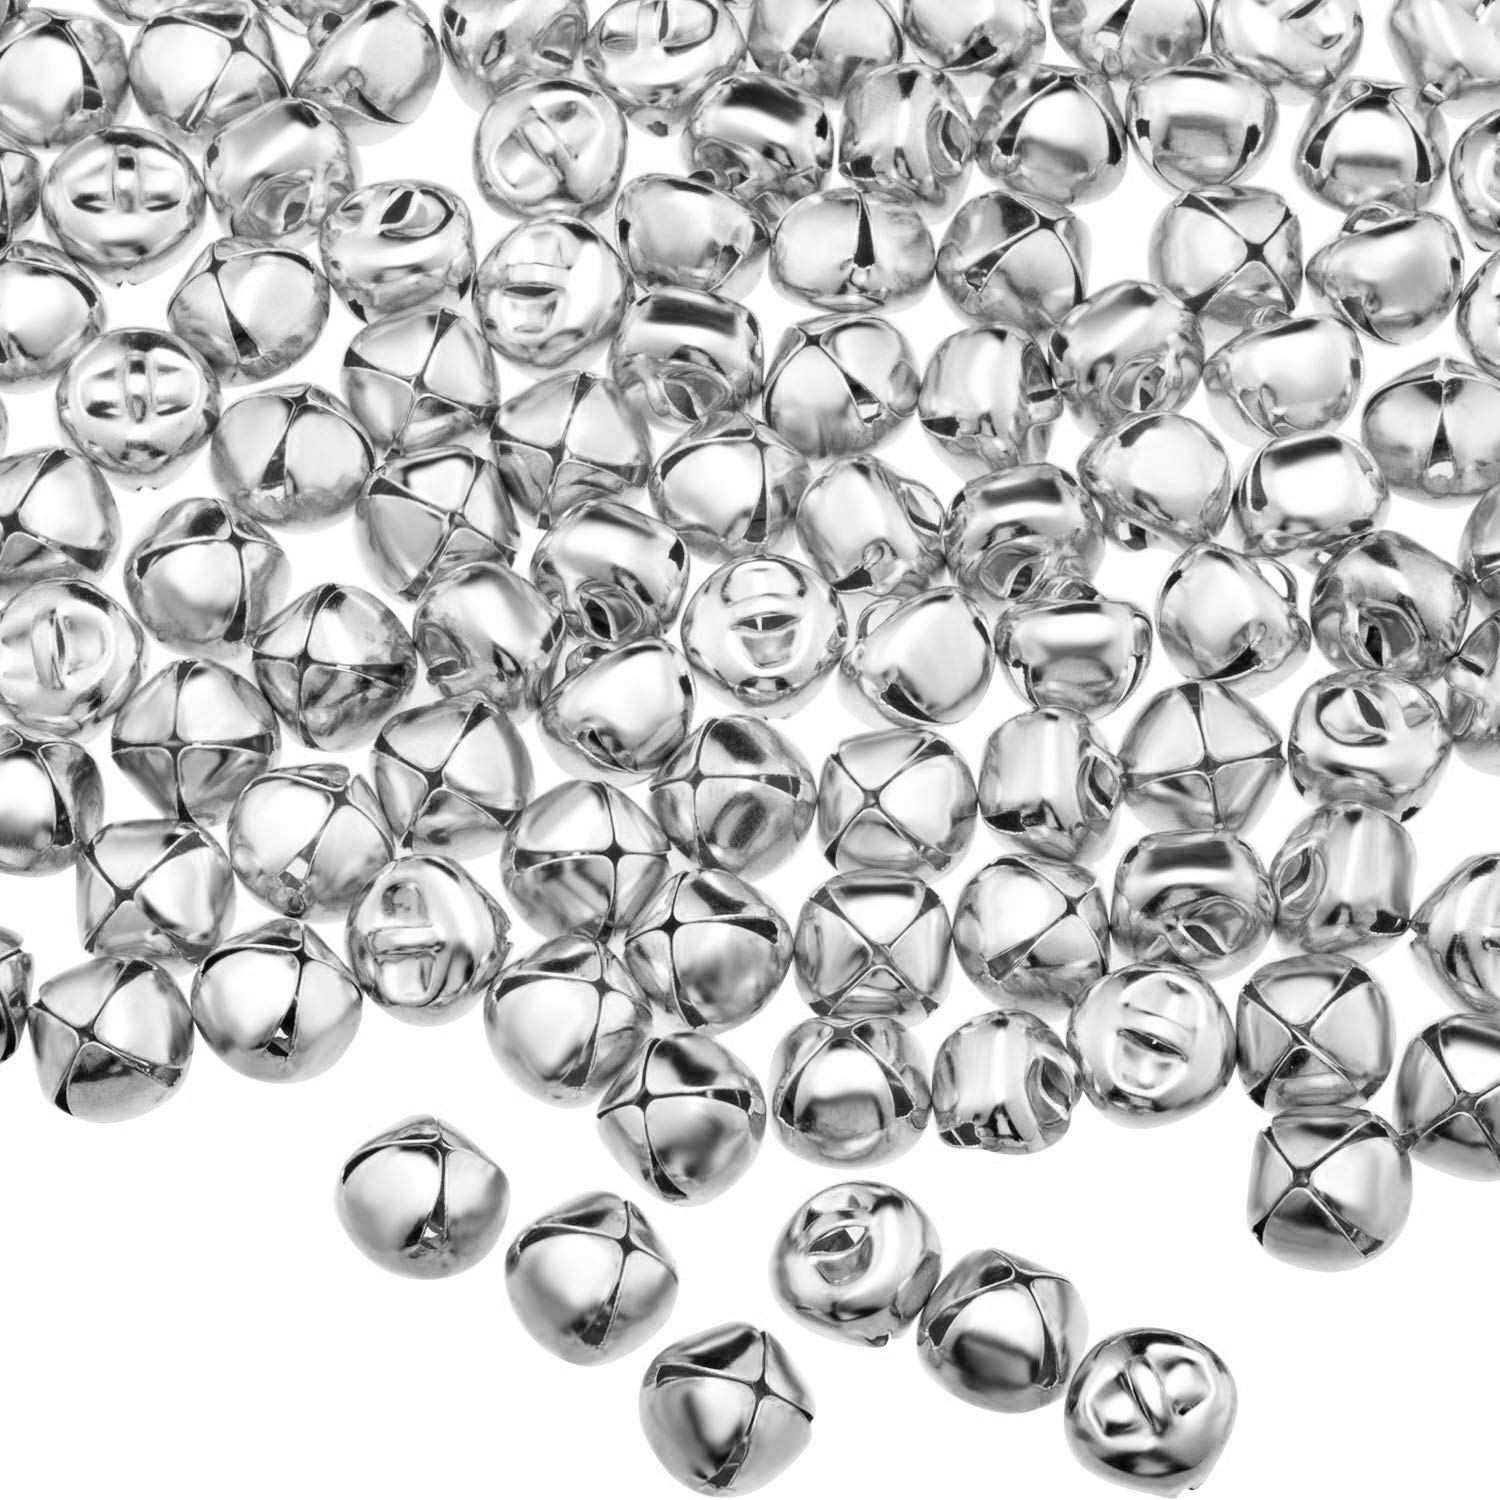 Craft and Favor Decorationg-300 Pieces Envysun 1//2 Inch Craft Bells Silver Jingle Bells Set for Kids